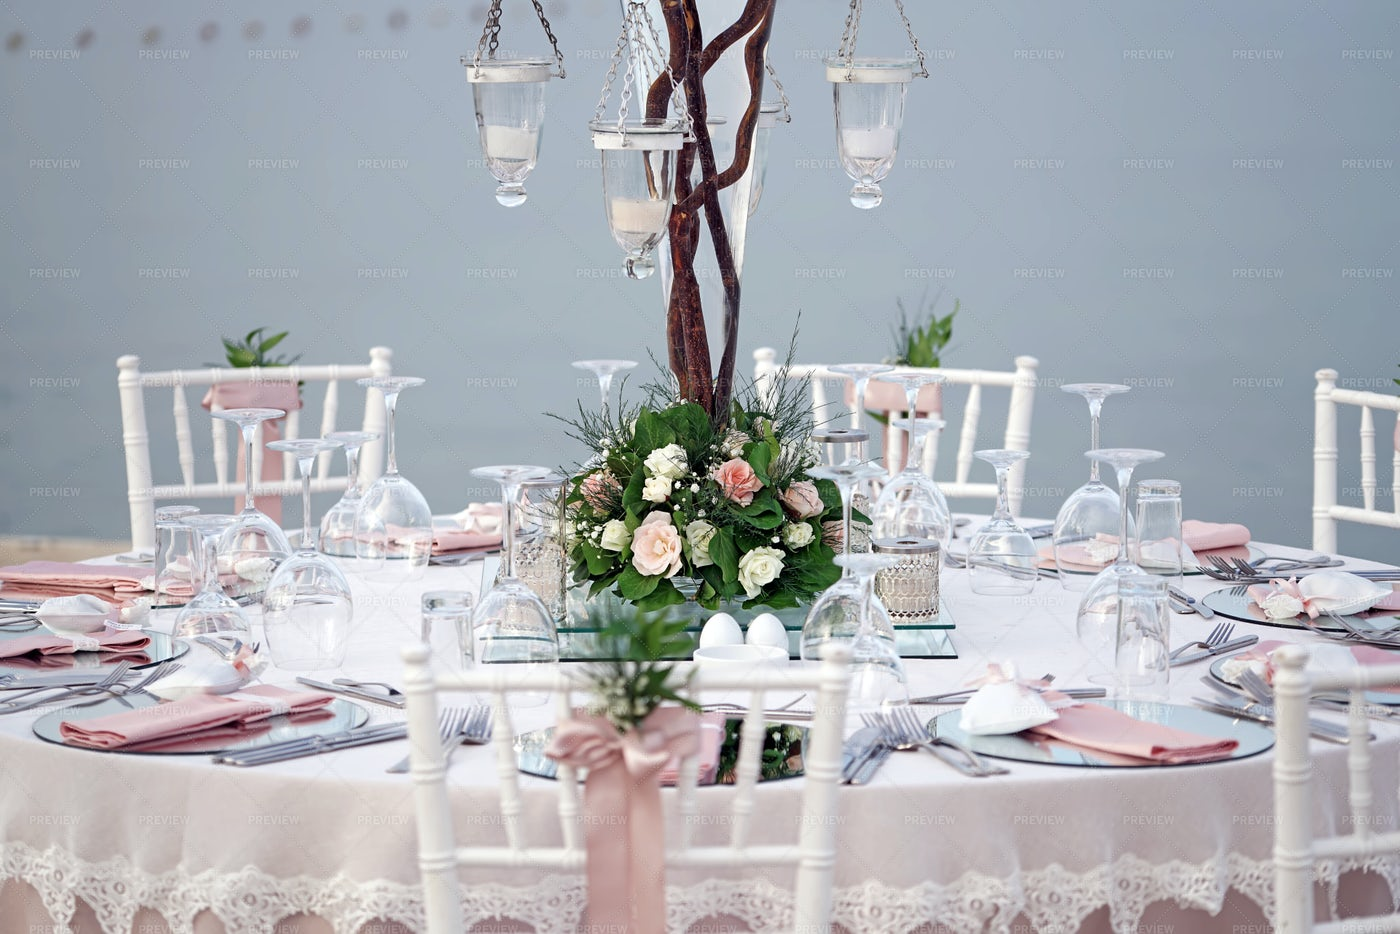 Decorated Wedding Table: Stock Photos